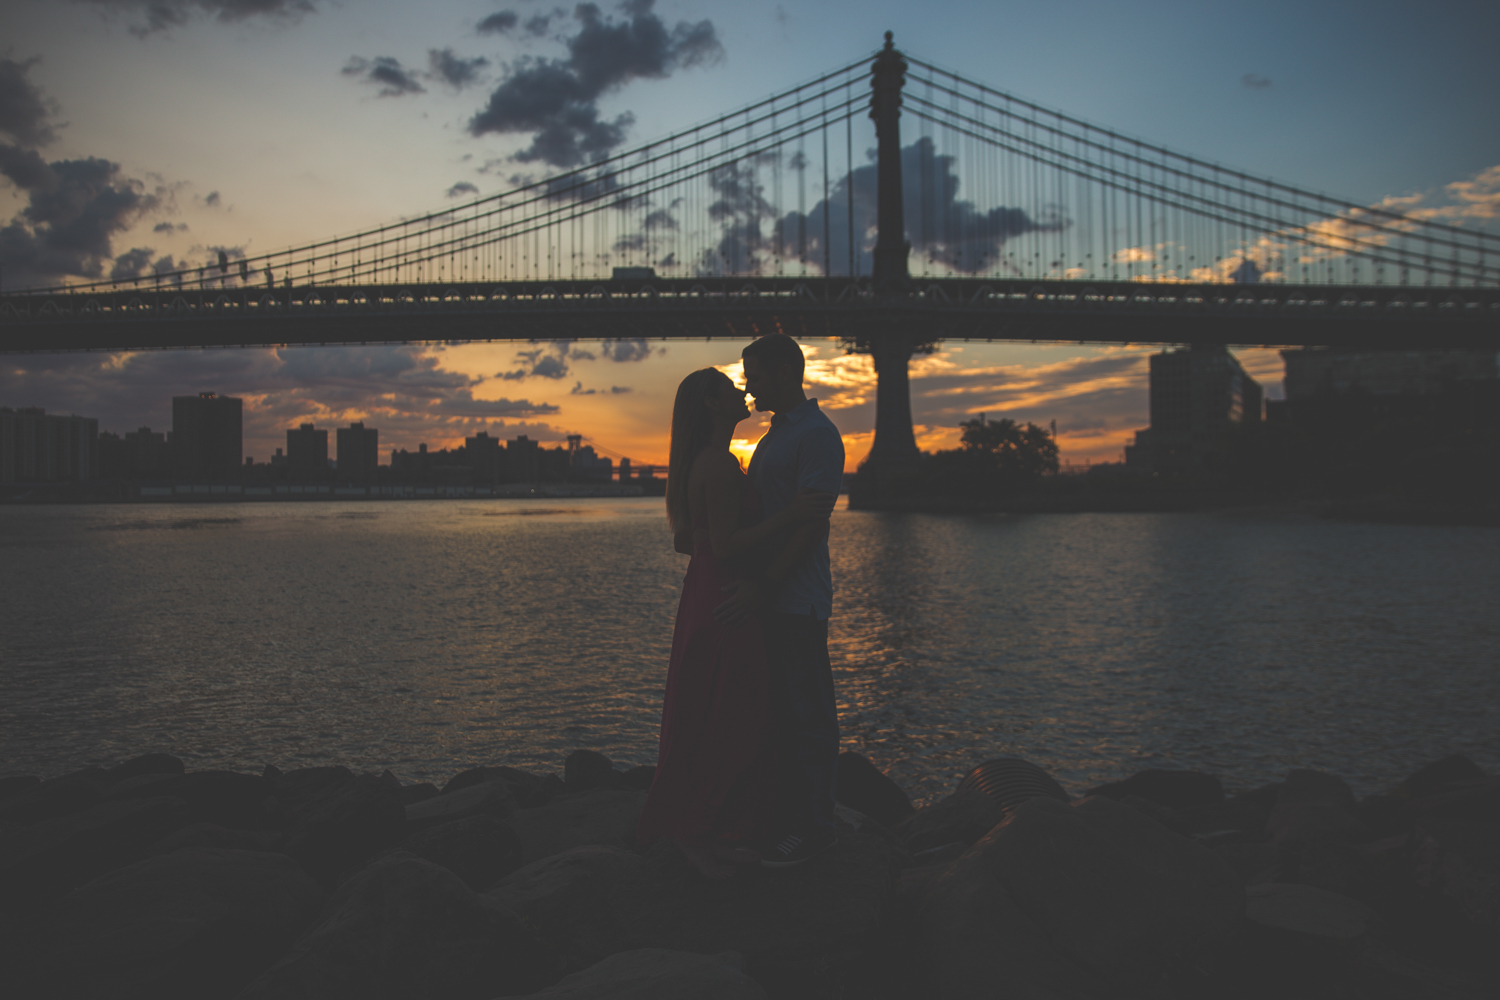 amazing-sunrise-engagement-photography-brooklyn-bridge-dumbo-10.jpg